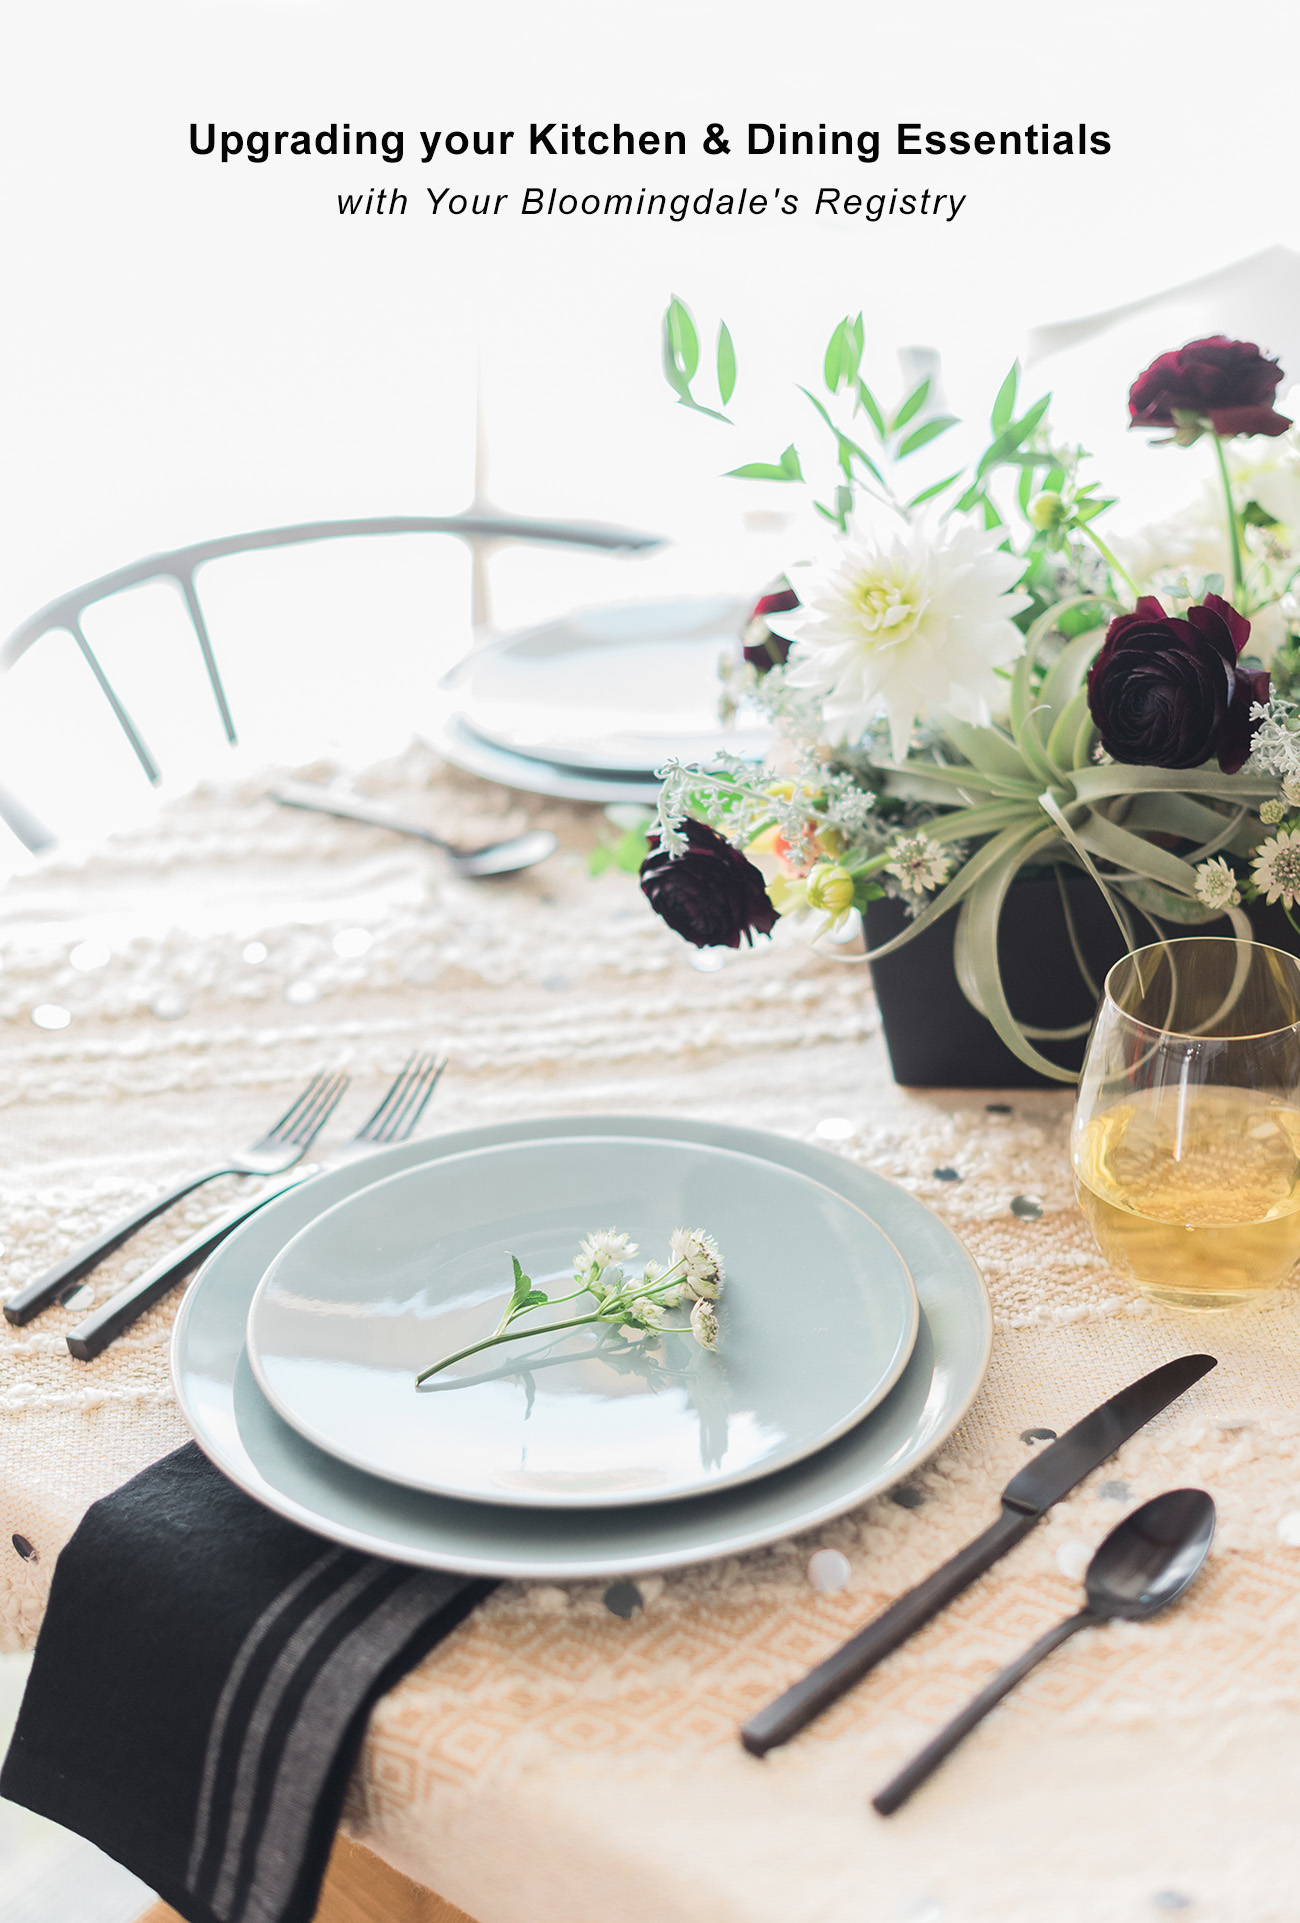 Dining Essentials Made Easy with Your Bloomingdale?s Registry